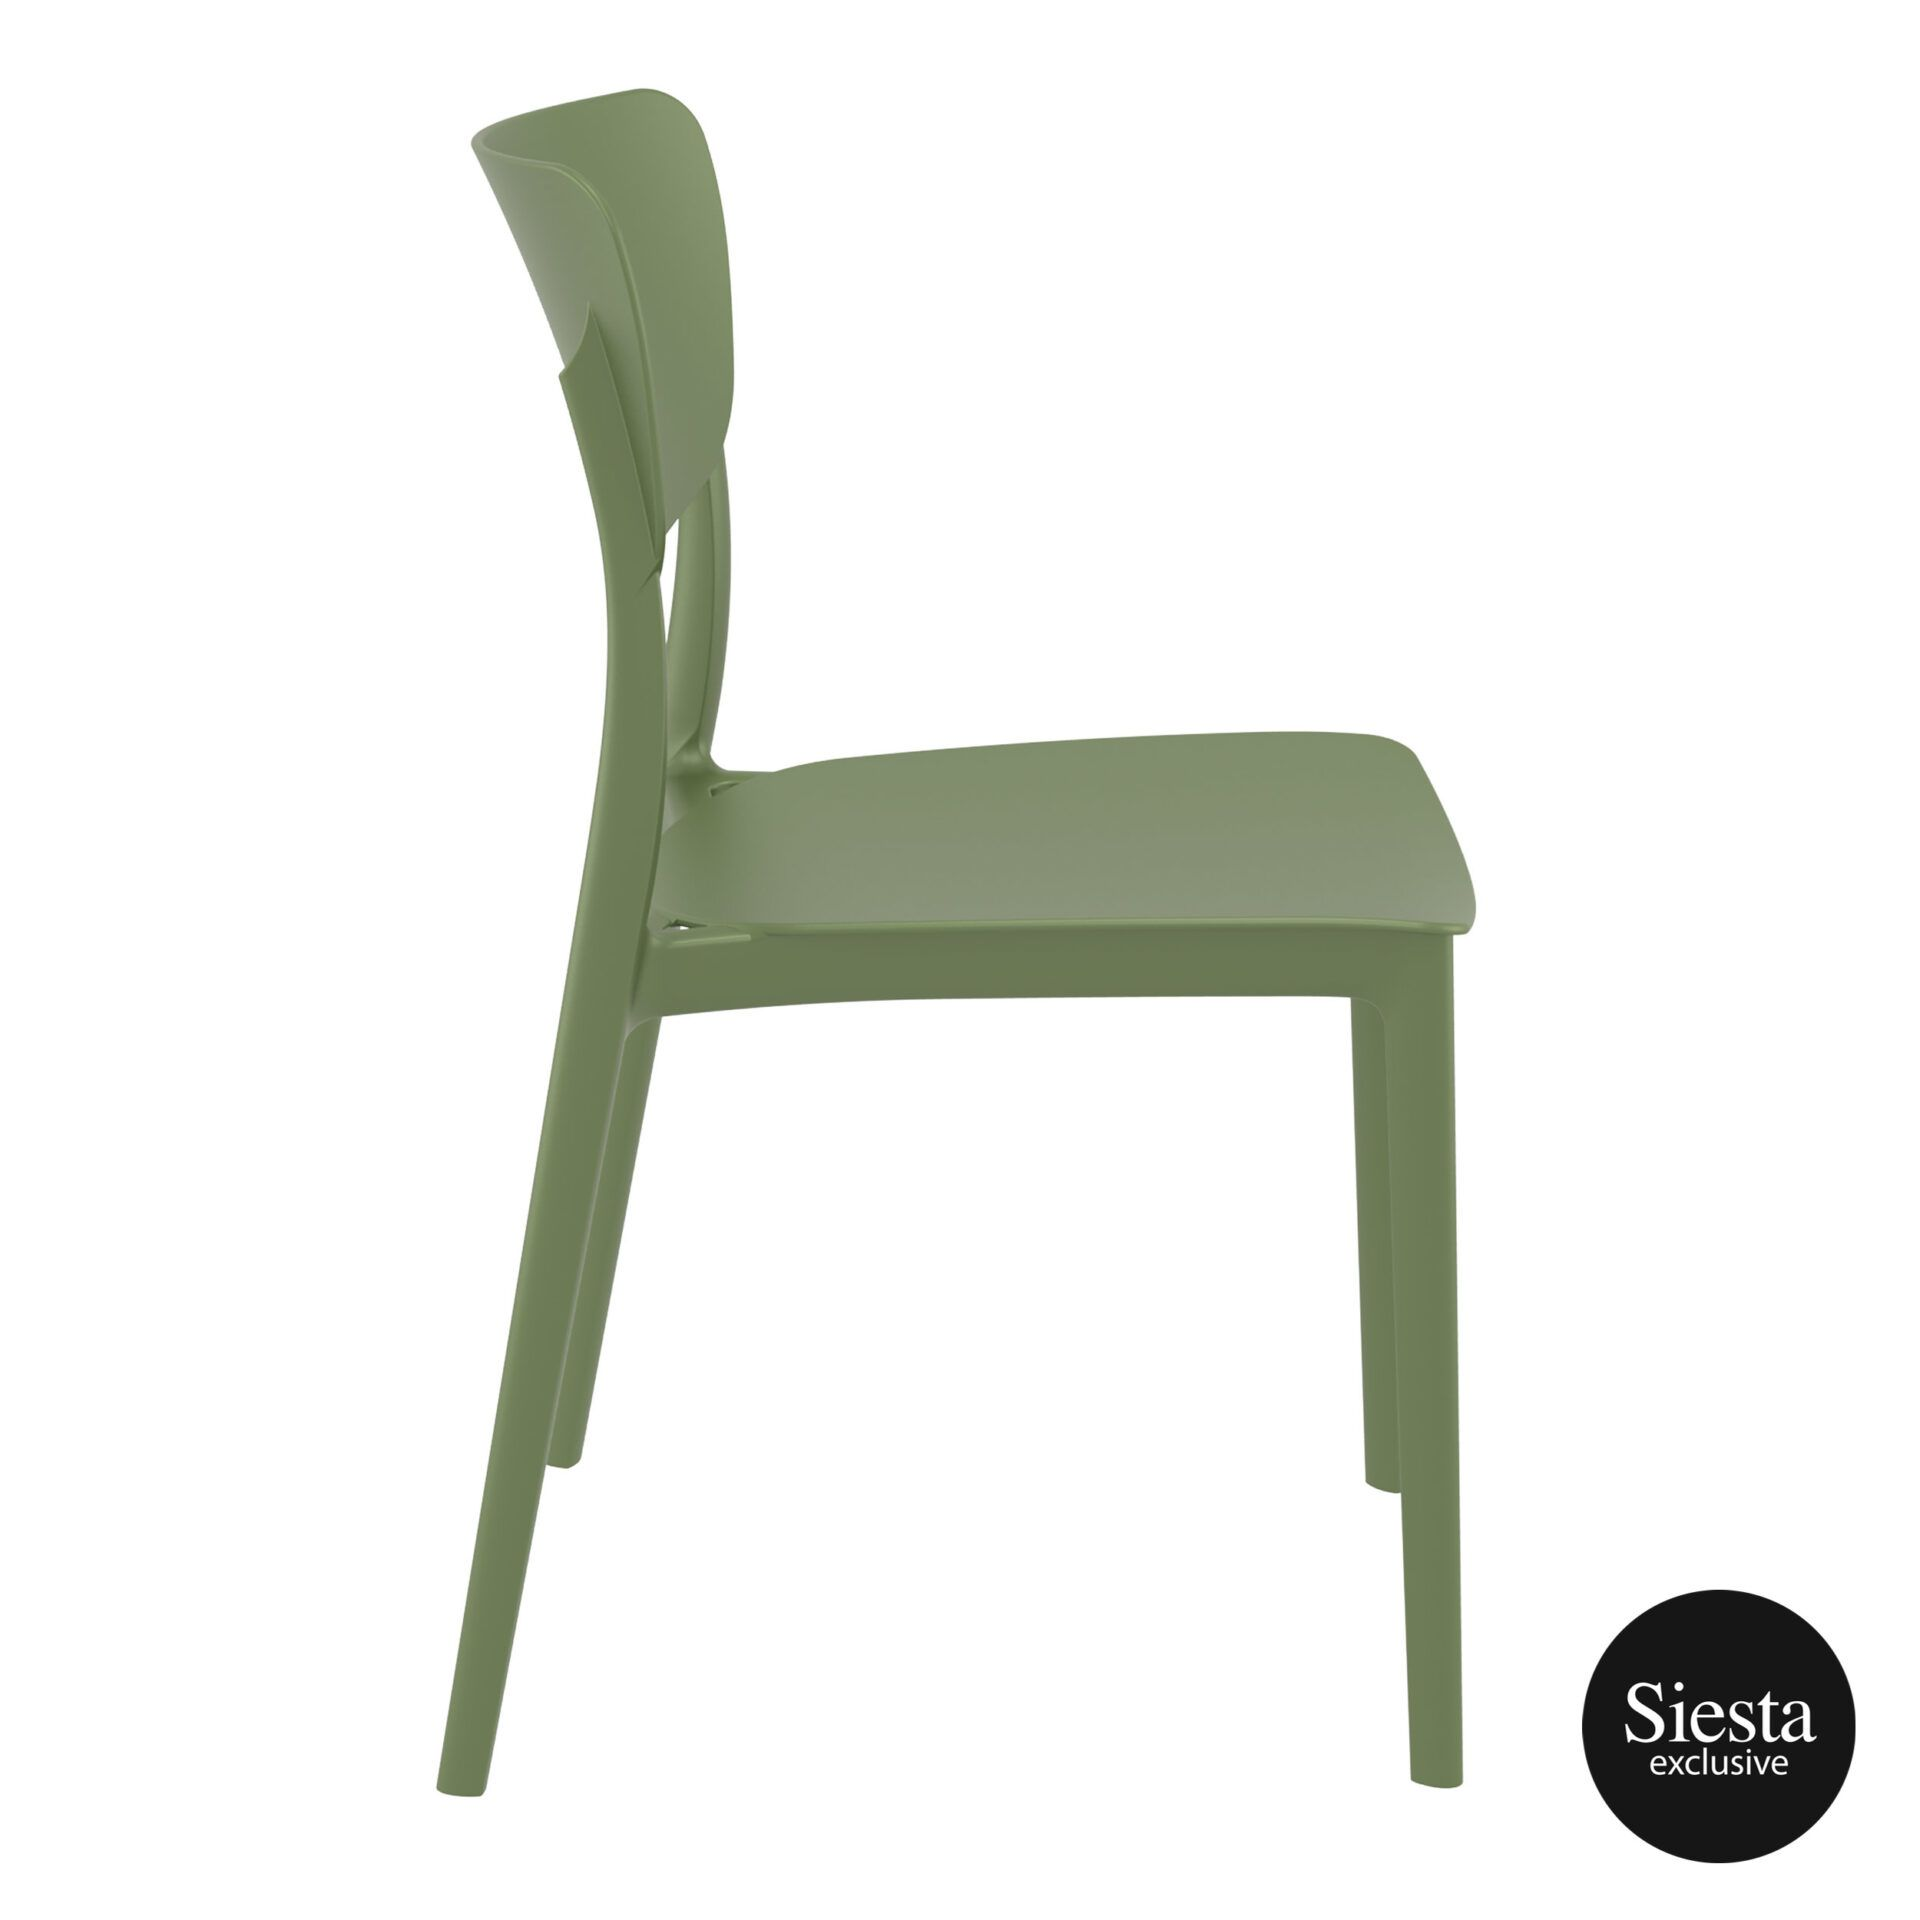 polypropylene outdoor dining monna chair olive green side 1